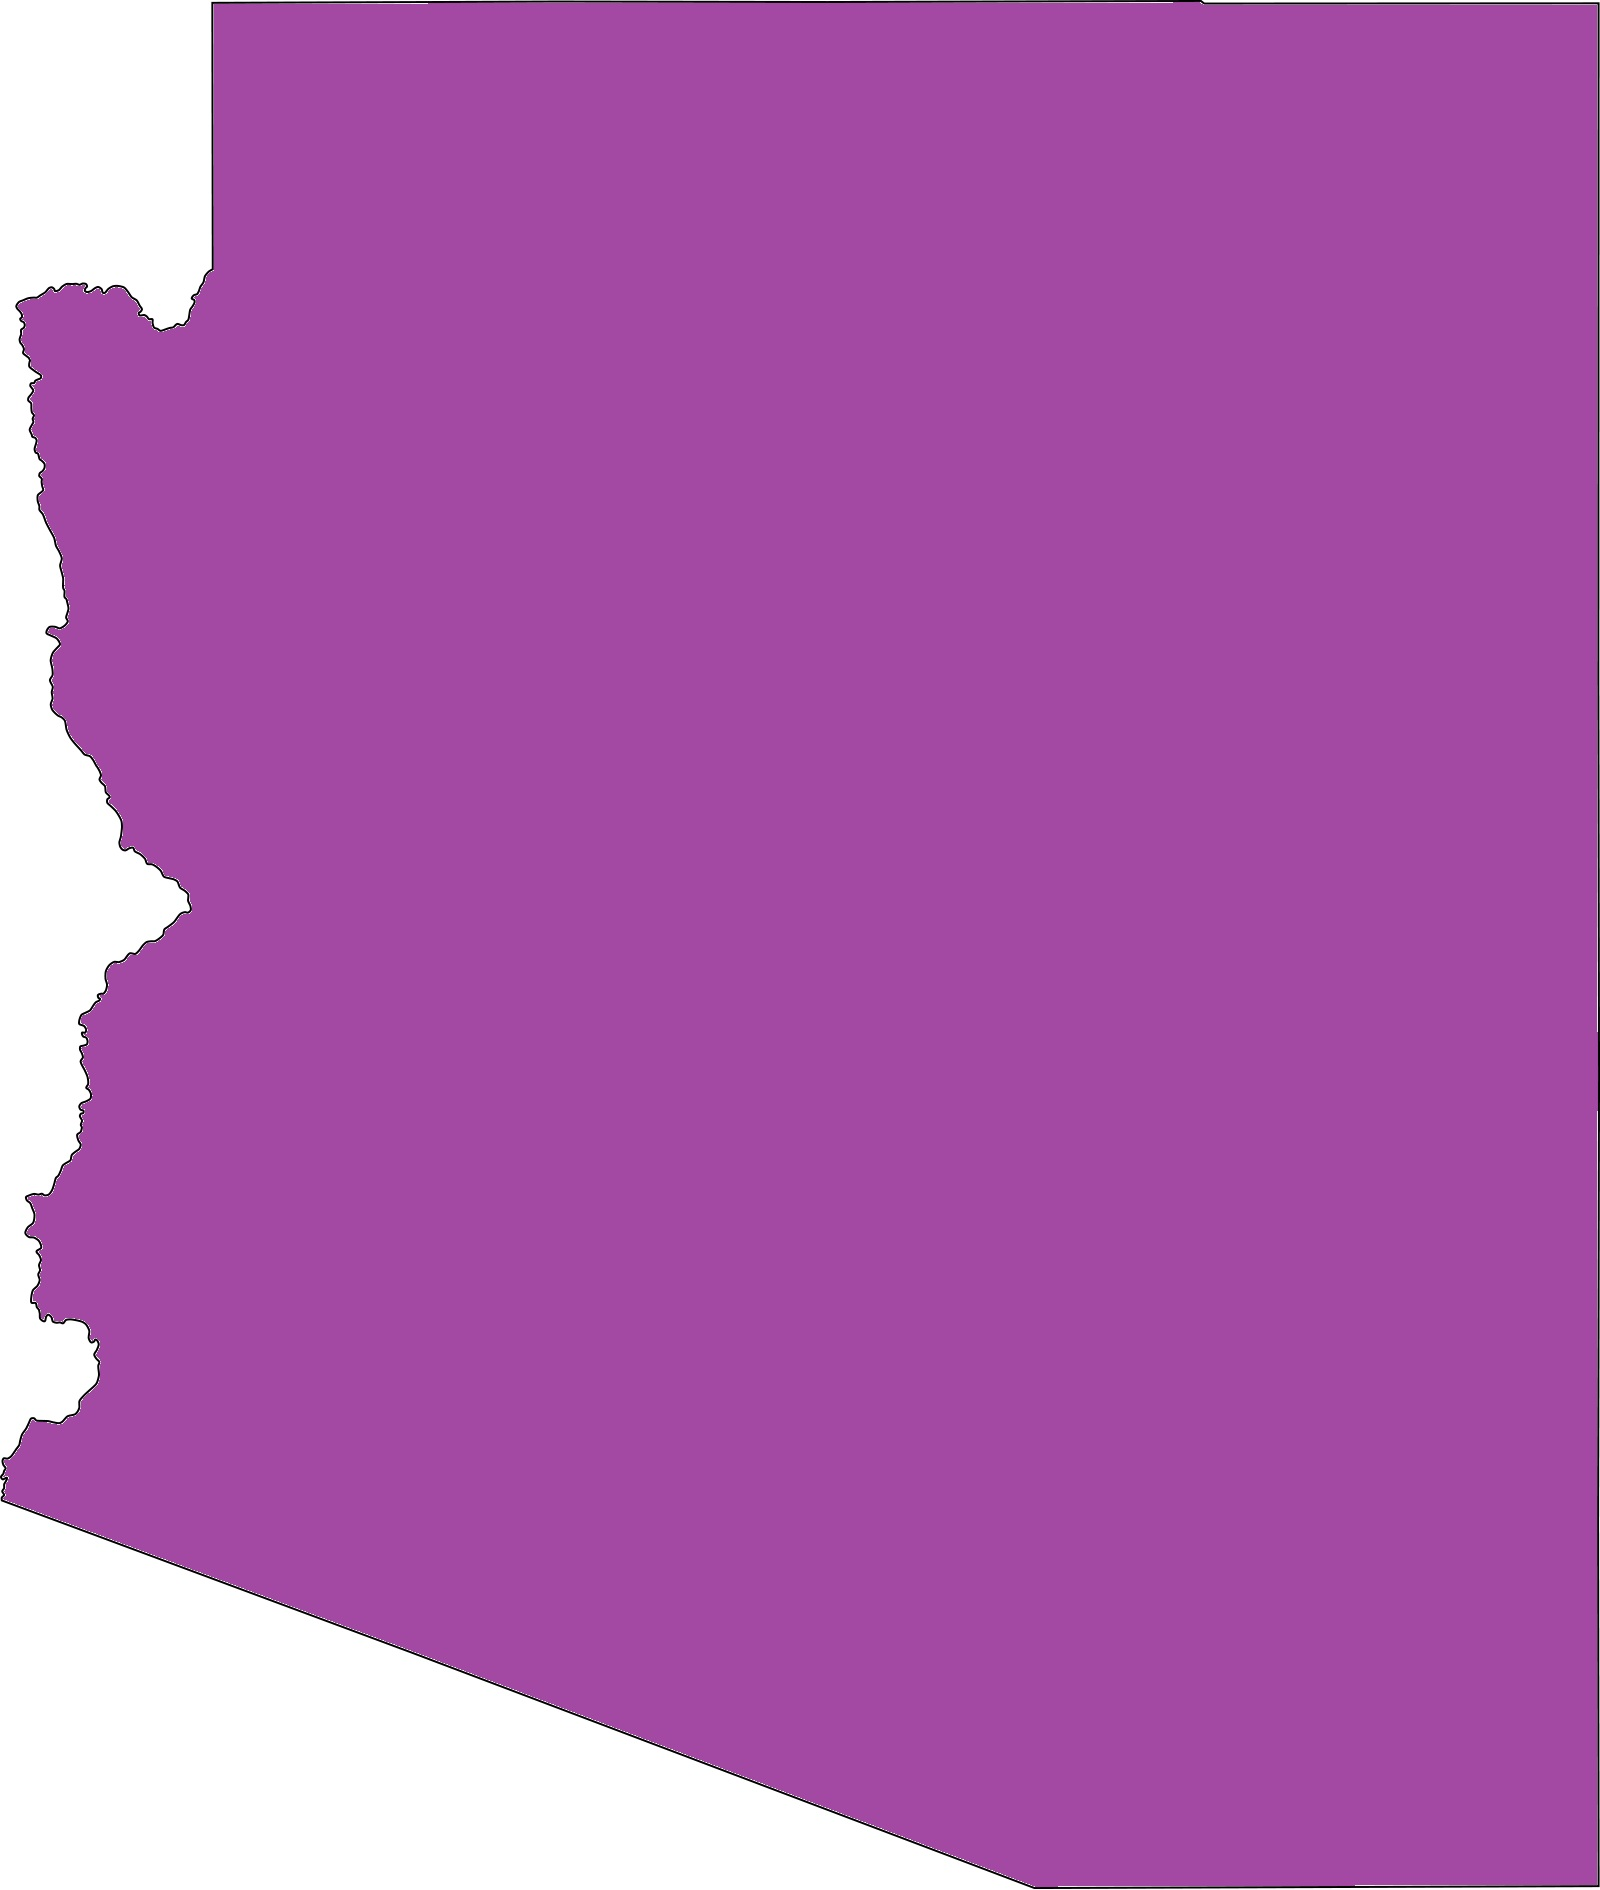 Arizona Blank Outline Map   Blank Outline Map of Arizona – 3